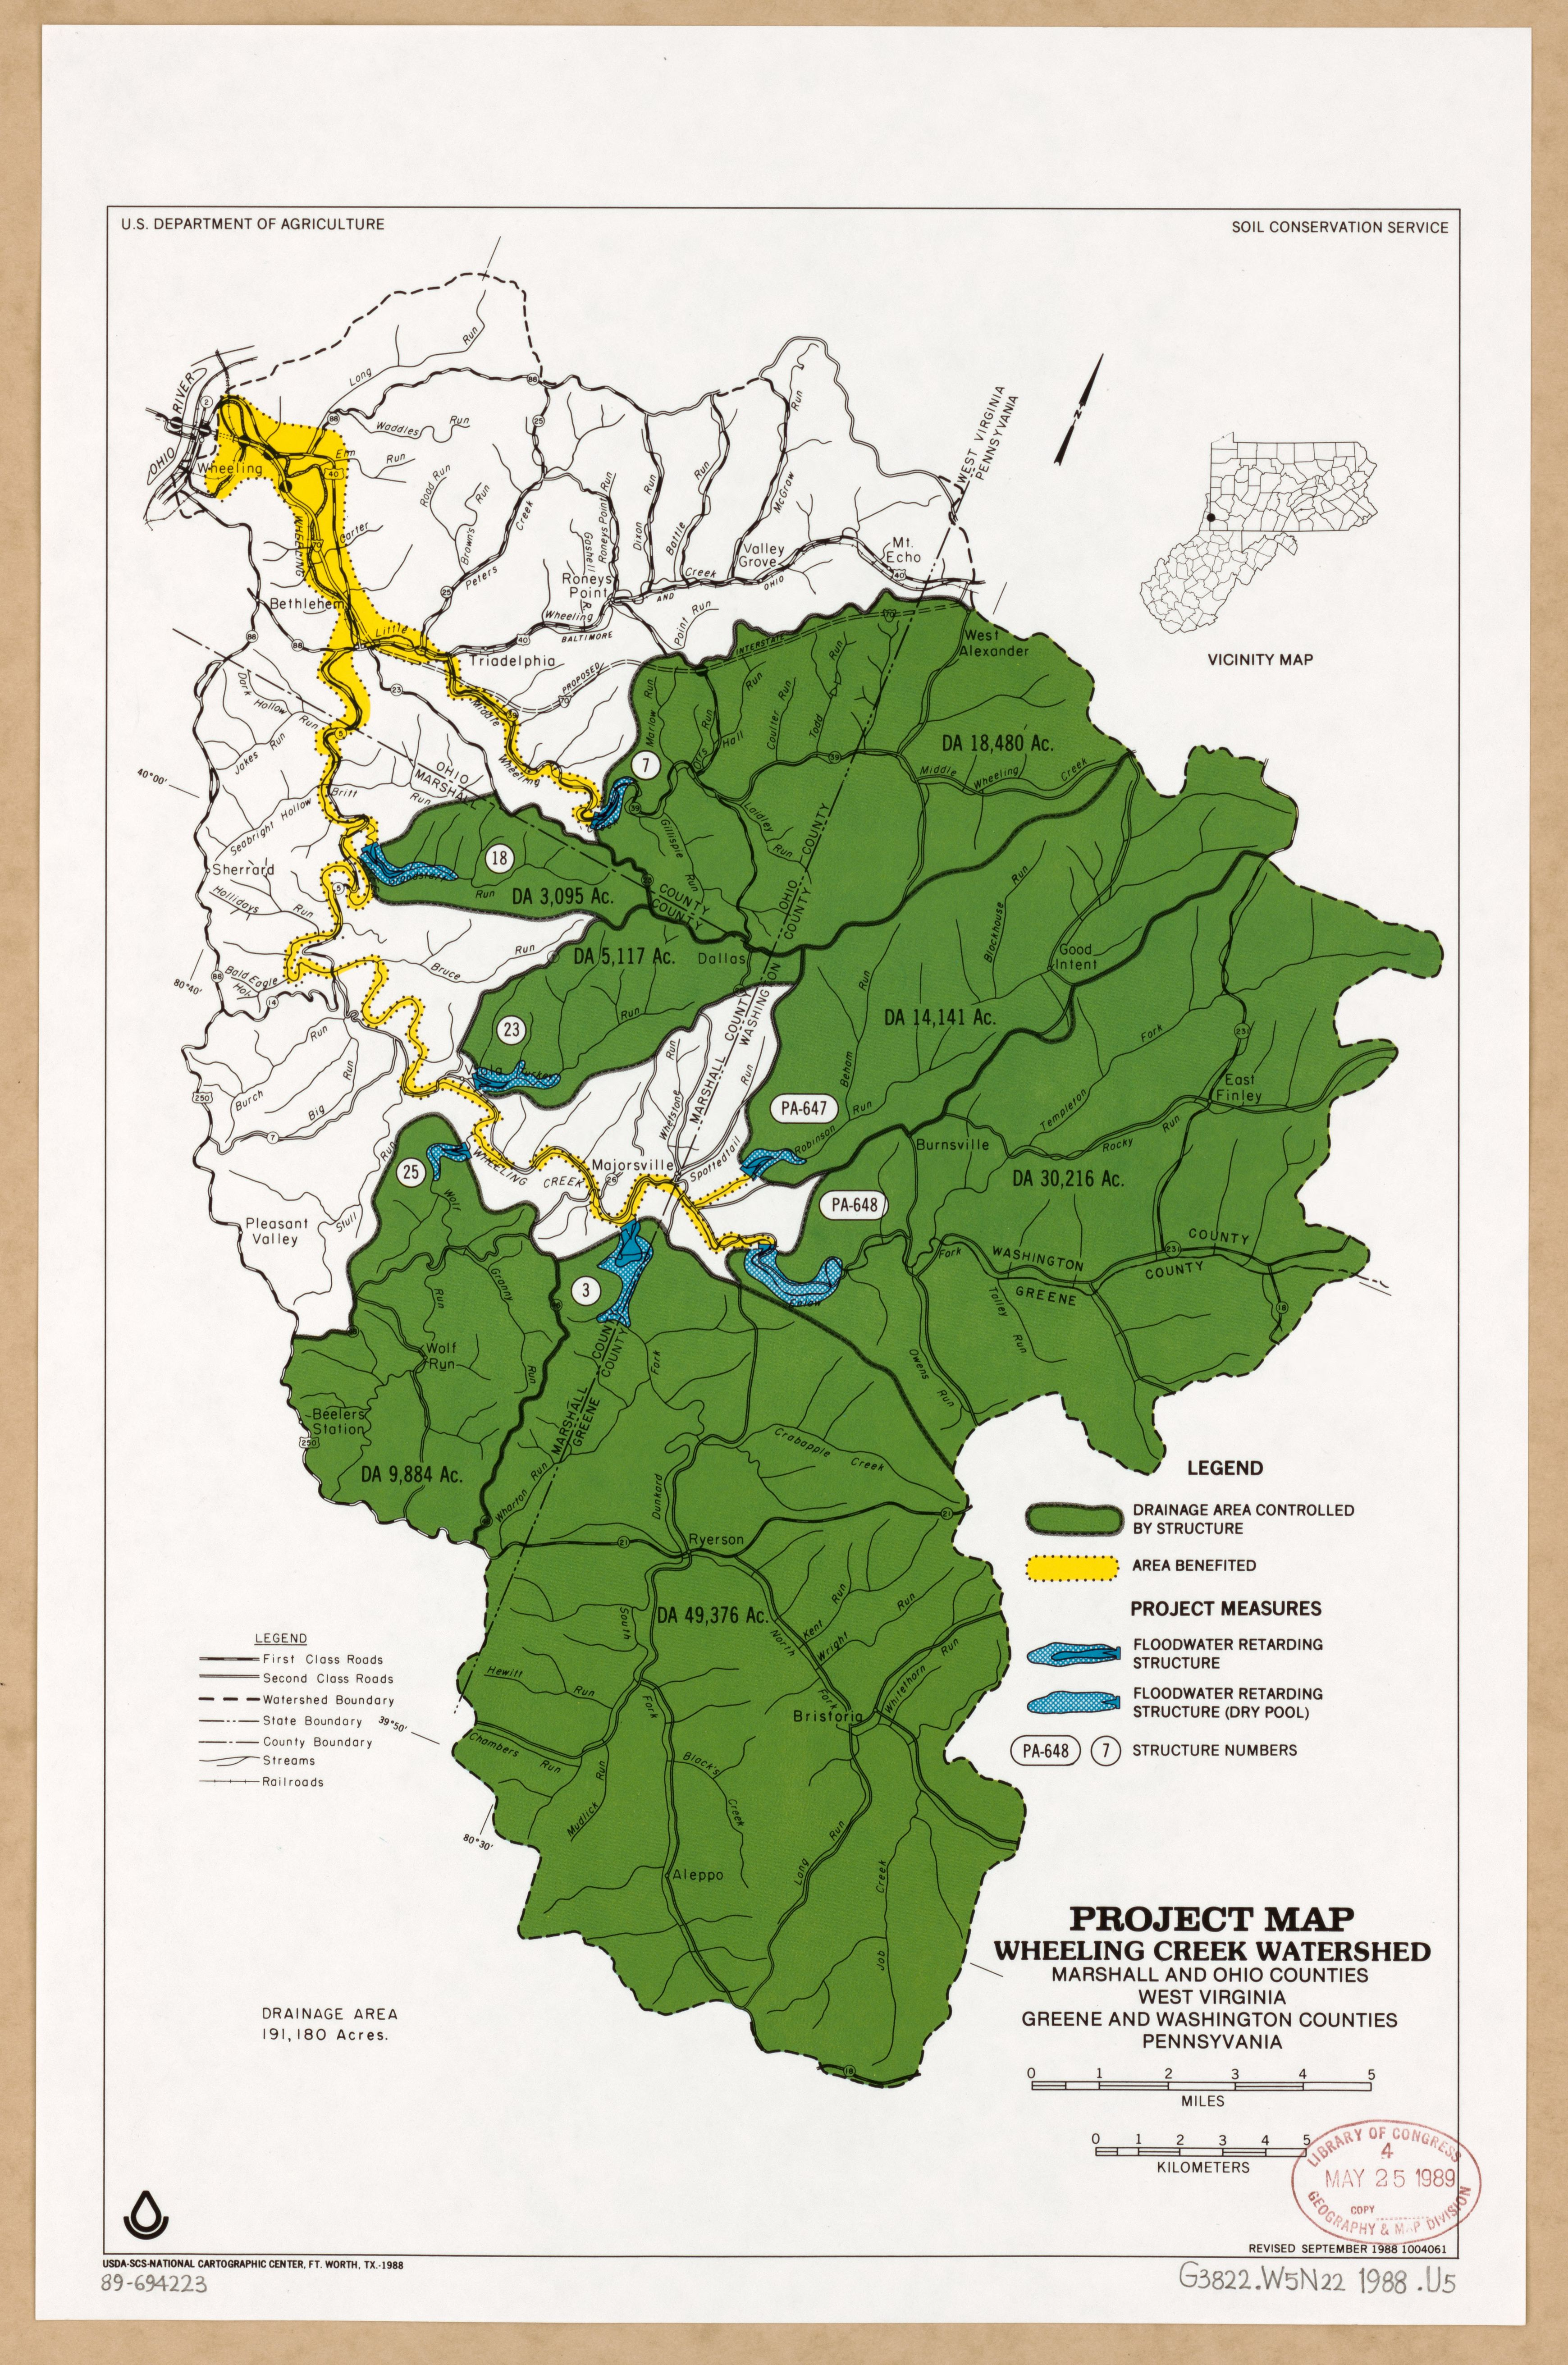 Map Of Ohio West Virginia And Pennsylvania.File Project Map Wheeling Creek Watershed Marshall And Ohio